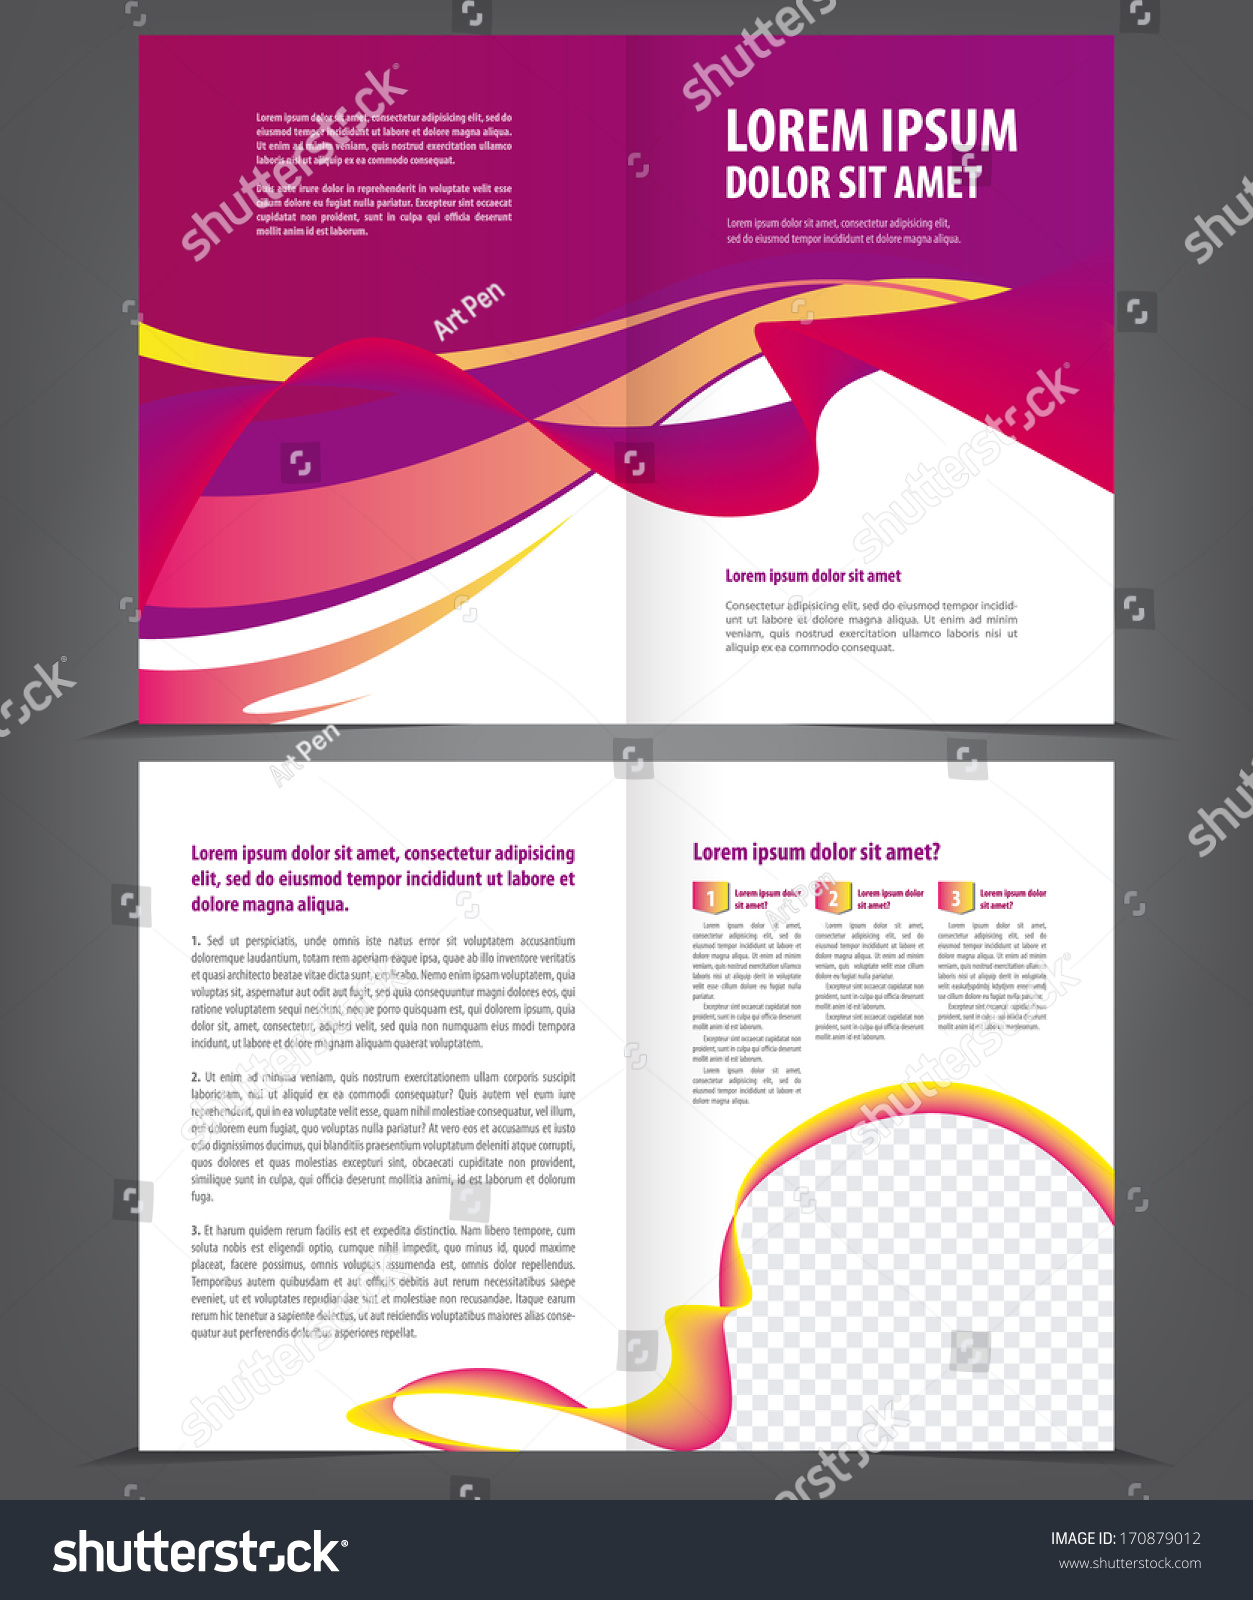 Famous 1 Page Website Template Thick 10 Best Resume Writers Regular 100 Square Pool Template 1099 Employee Contract Template Youthful 2 Column Notes Template Pink2 Page Resume Format Doc Twofold Beauty Violet Brochure Print Template Stock Vector ..